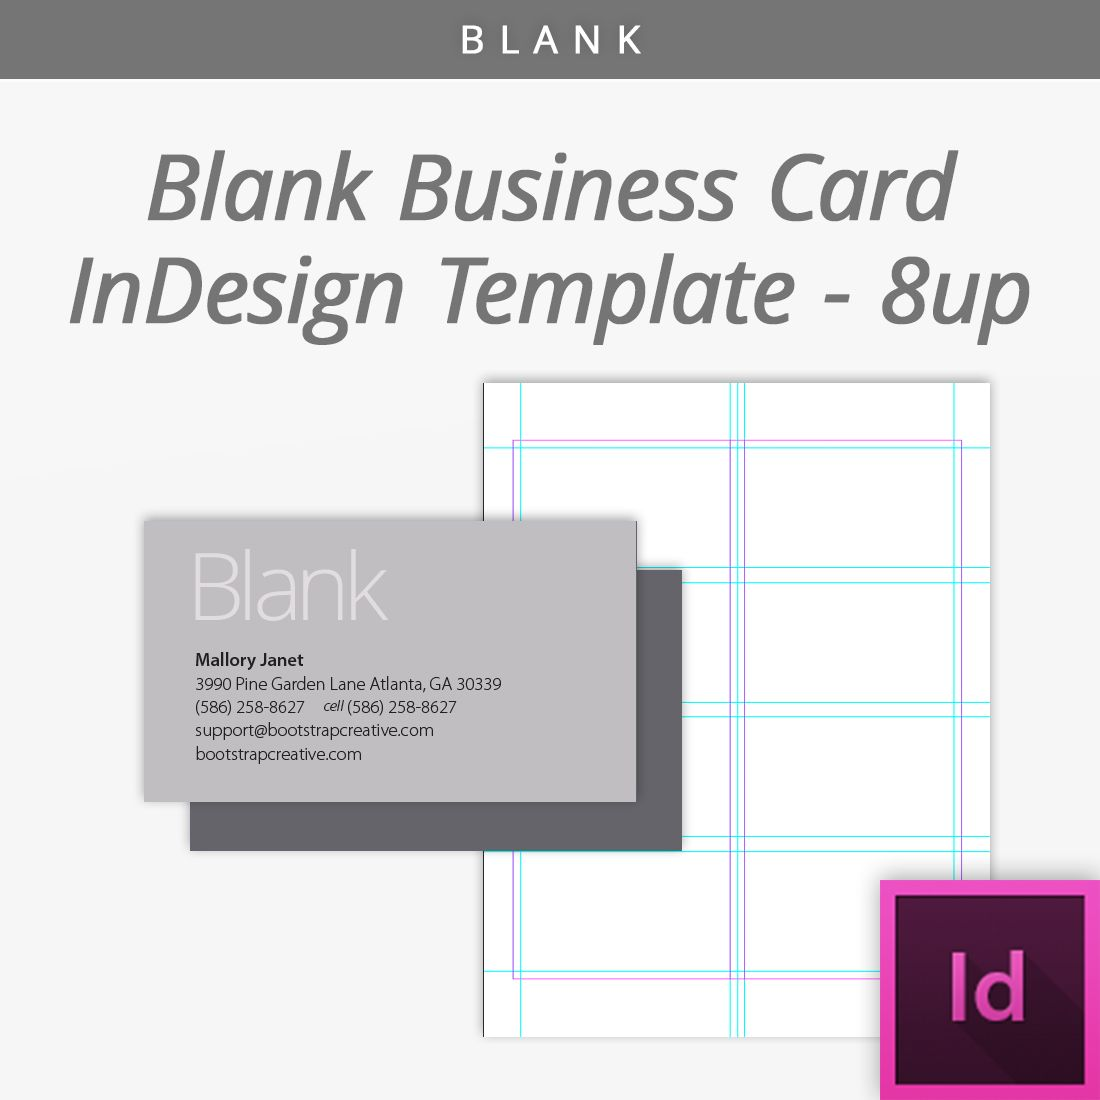 Blank InDesign Business Card Template Up Free Download - Business card template indesign